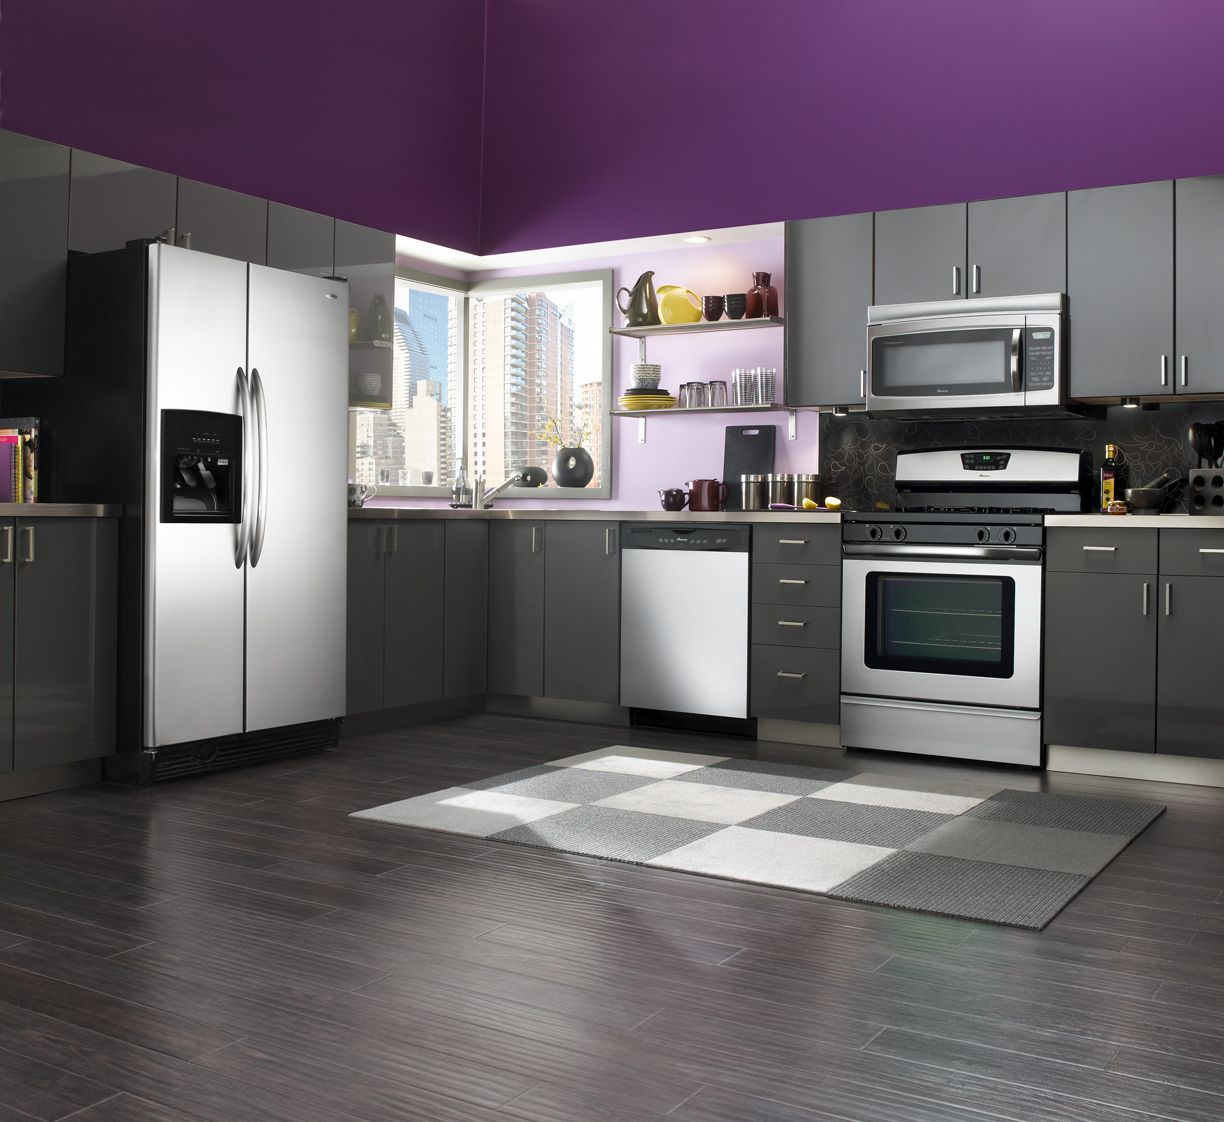 Kitchen Colors Color Schemes And Designs: Beautiful Kitchen Designs In Purple Color : Enticing